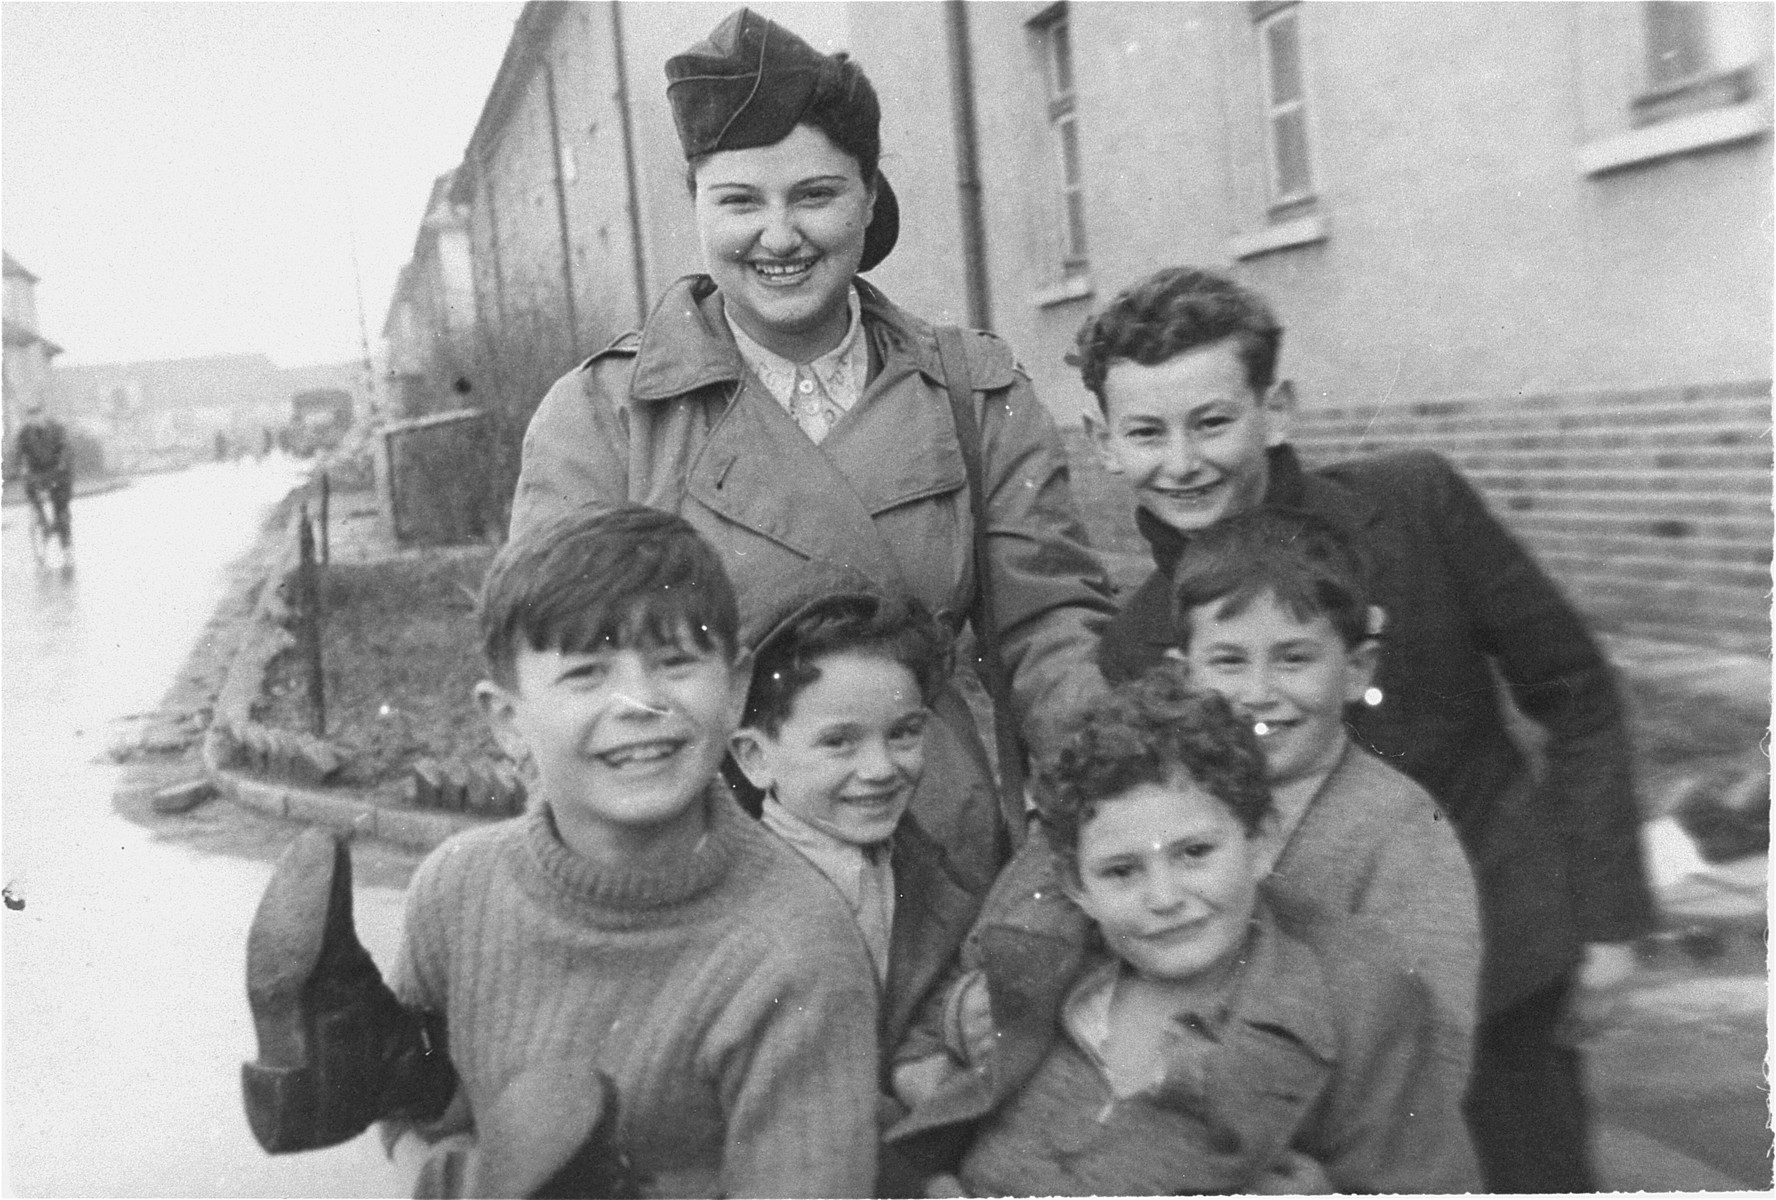 JDC relief worker Sally Wideroff poses with a group of orphaned children at the Bergen-Belsen displaced persons camp.    The photograph was given to Hadassah Rosensaft by Sally Bendremer.  The English caption on the back reads: 'To Hadasa, with fond remembrances, and best wishes for an early, safe and tremendous aliyah.  Sally von Joint.'